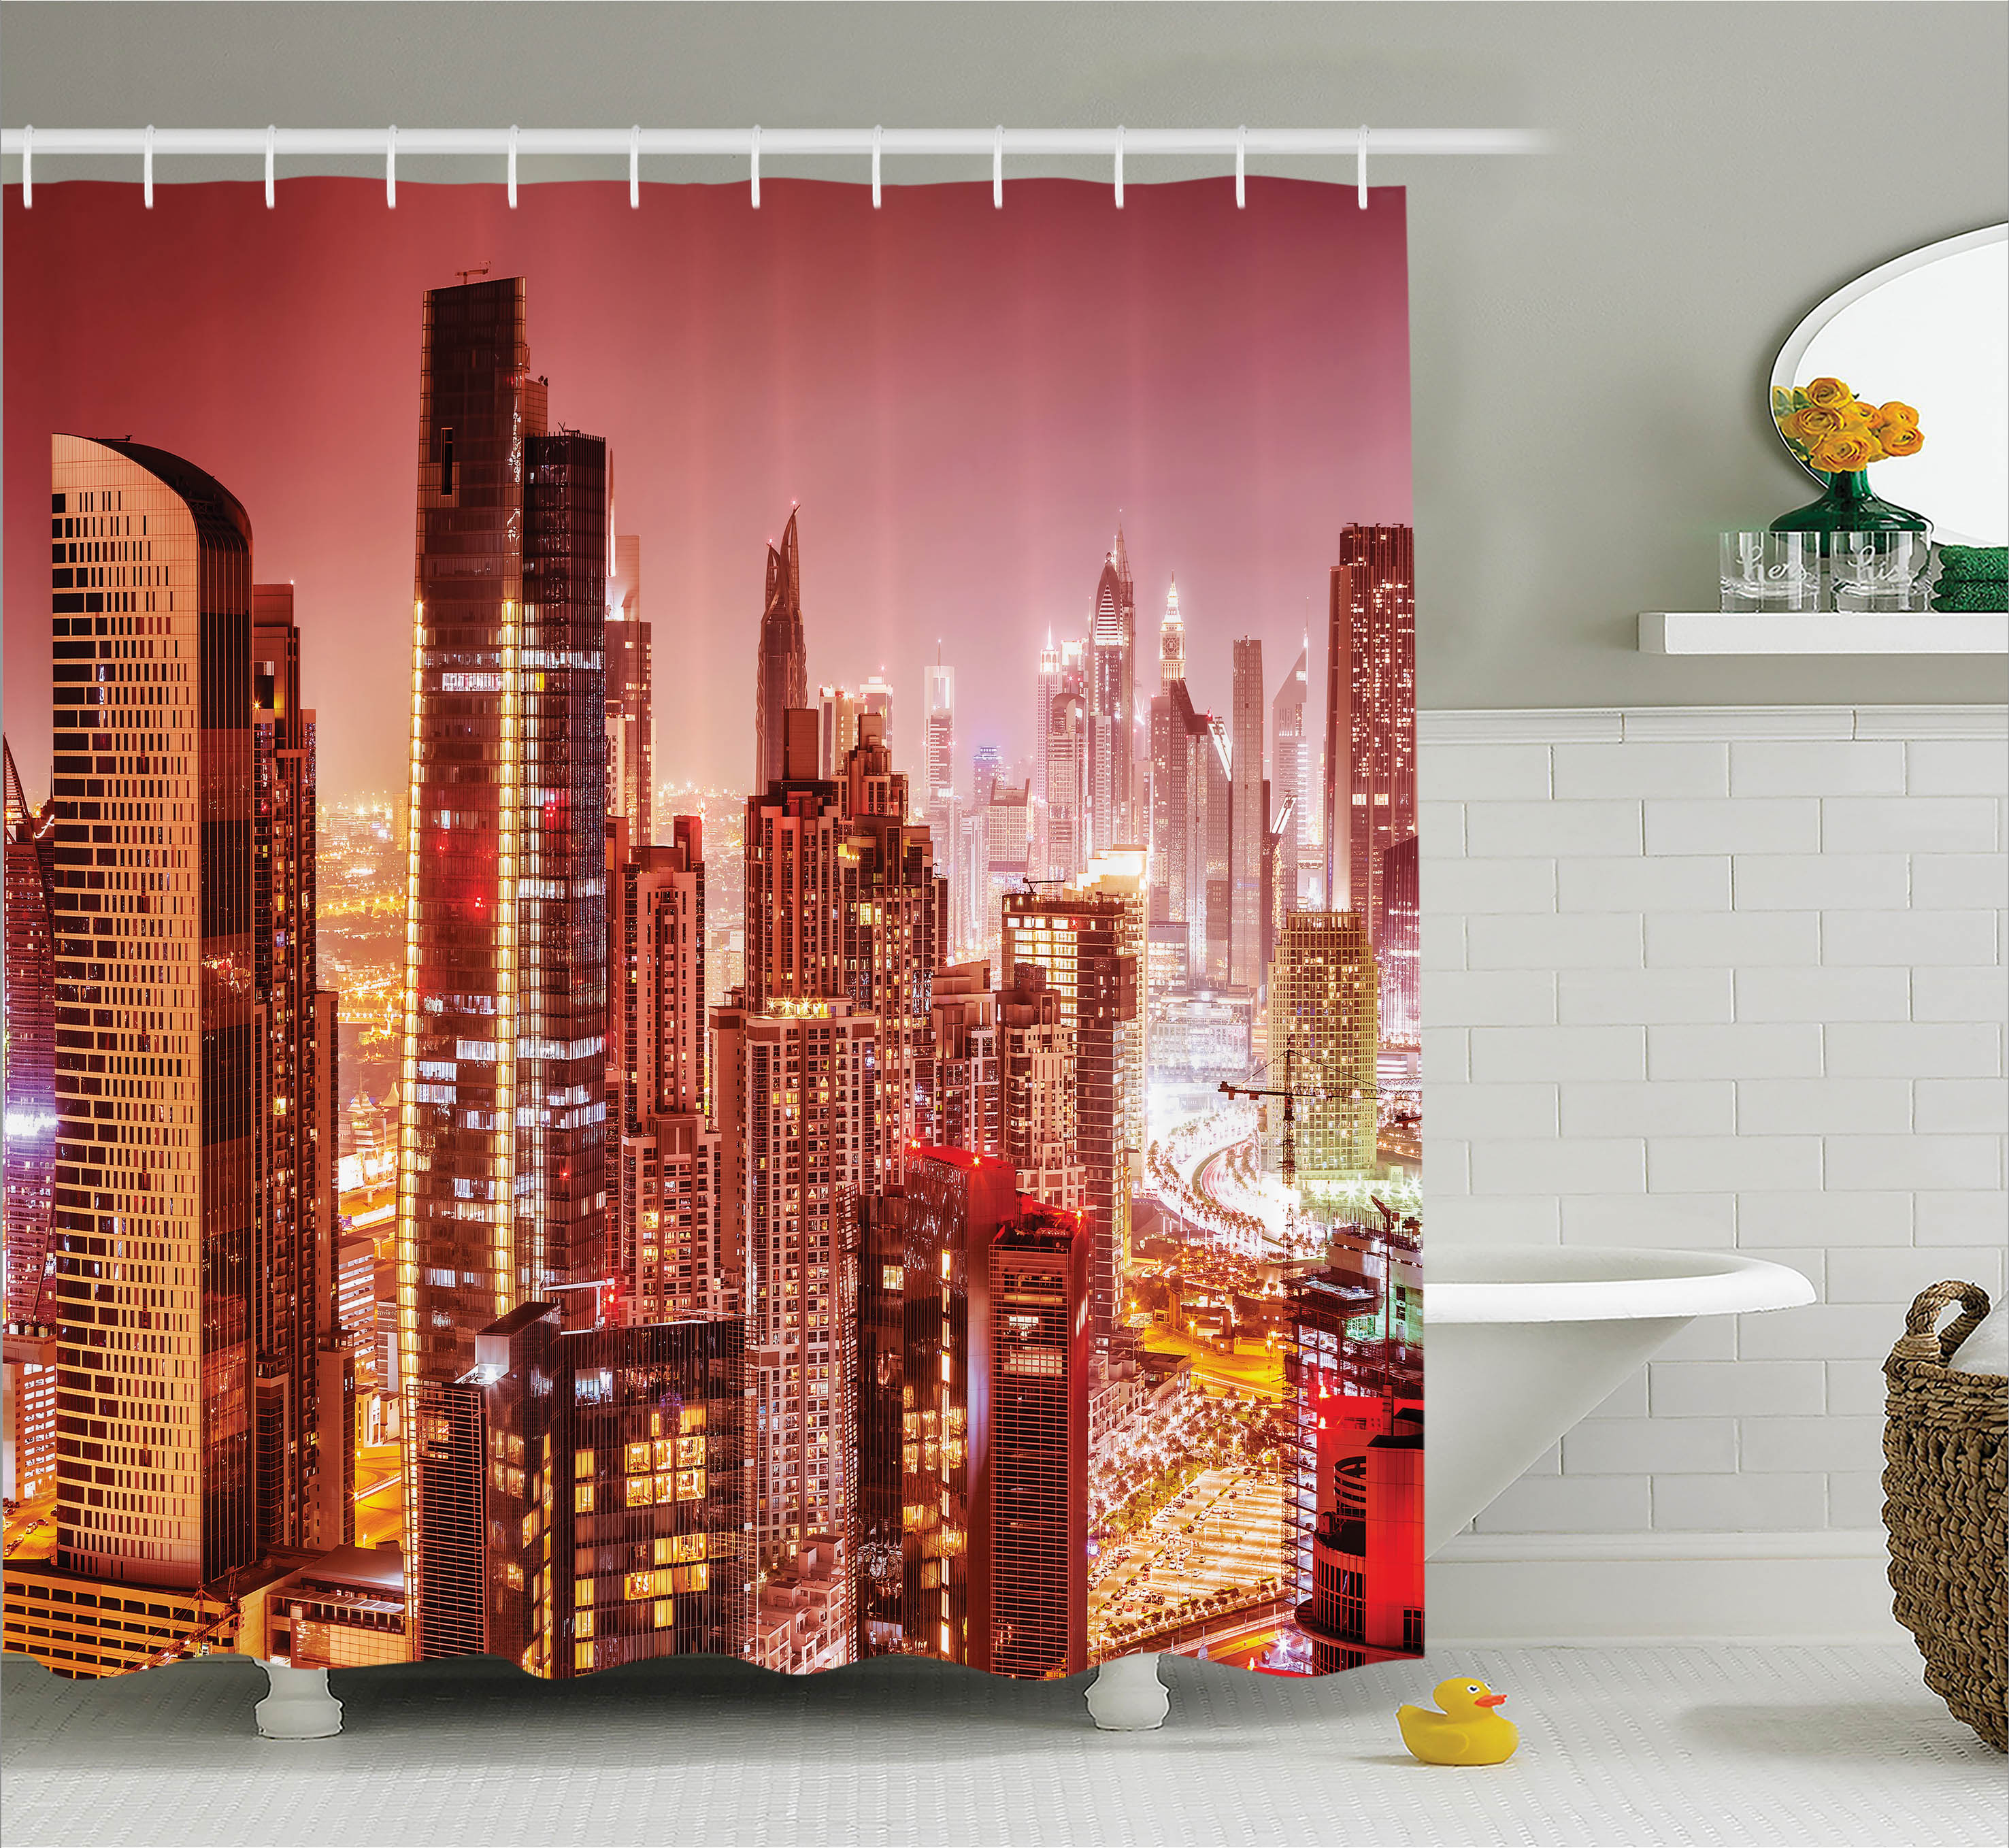 Apartment Decor Shower Curtain, Dubai at Night Cityscape with Lights of Tall Skyscrapers Panorama Print, Fabric Bathroom Set with Hooks, 69W X 84L Inches Extra Long, Pink Gold, by Ambesonne